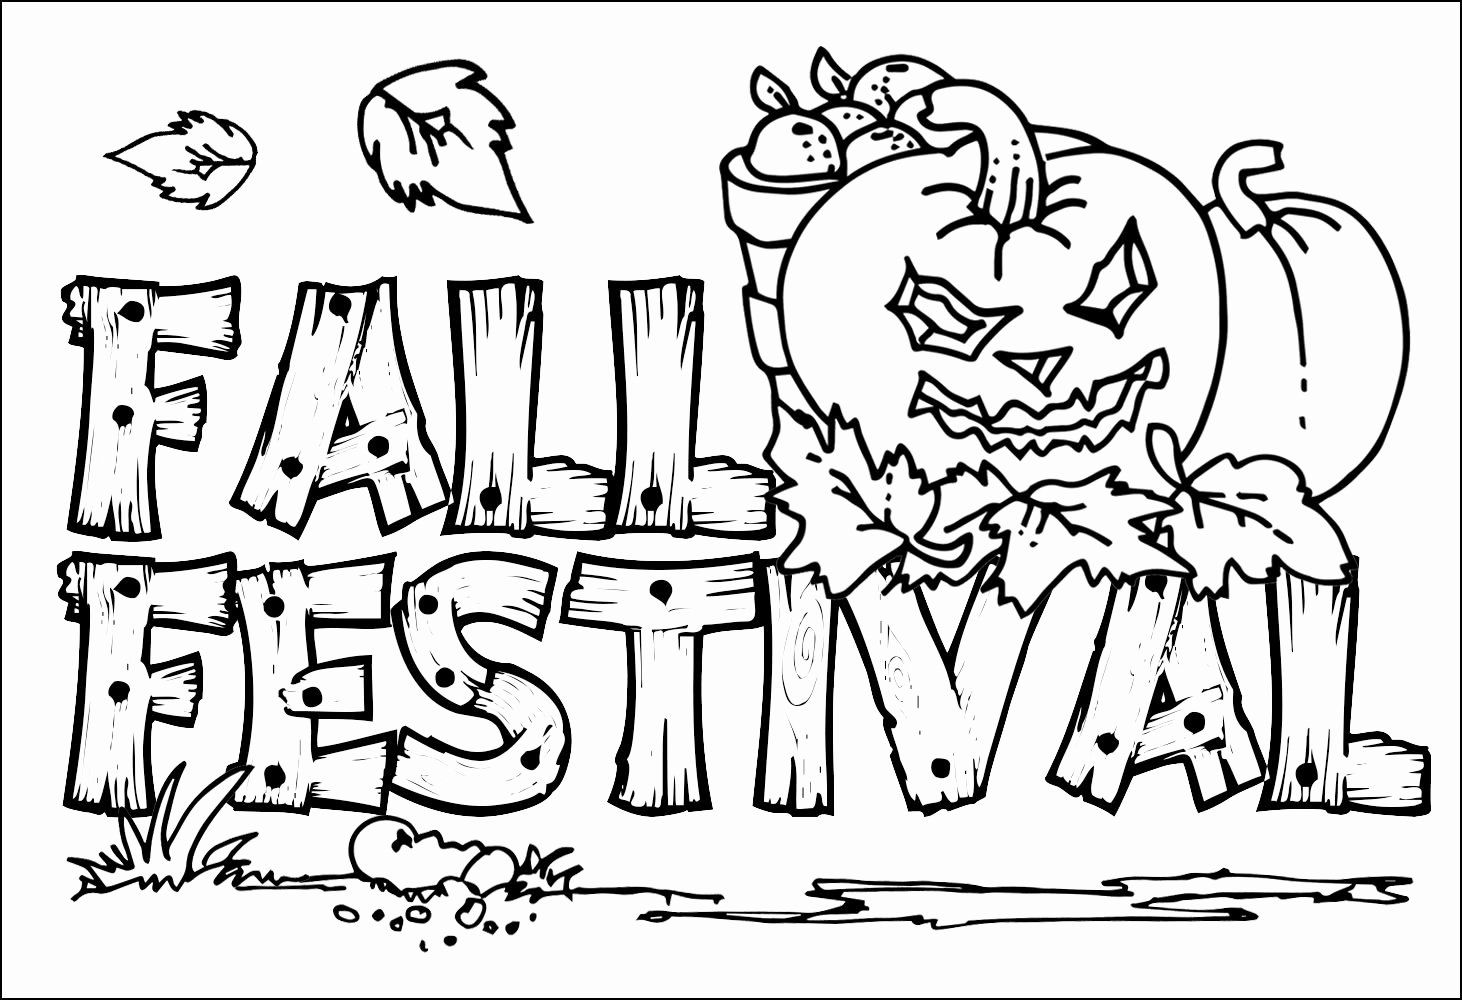 Autumn Coloring Pages Printable Best Of Fall Coloring Pages Fall Coloring Pages Fall Coloring Sheets Halloween Coloring Pages